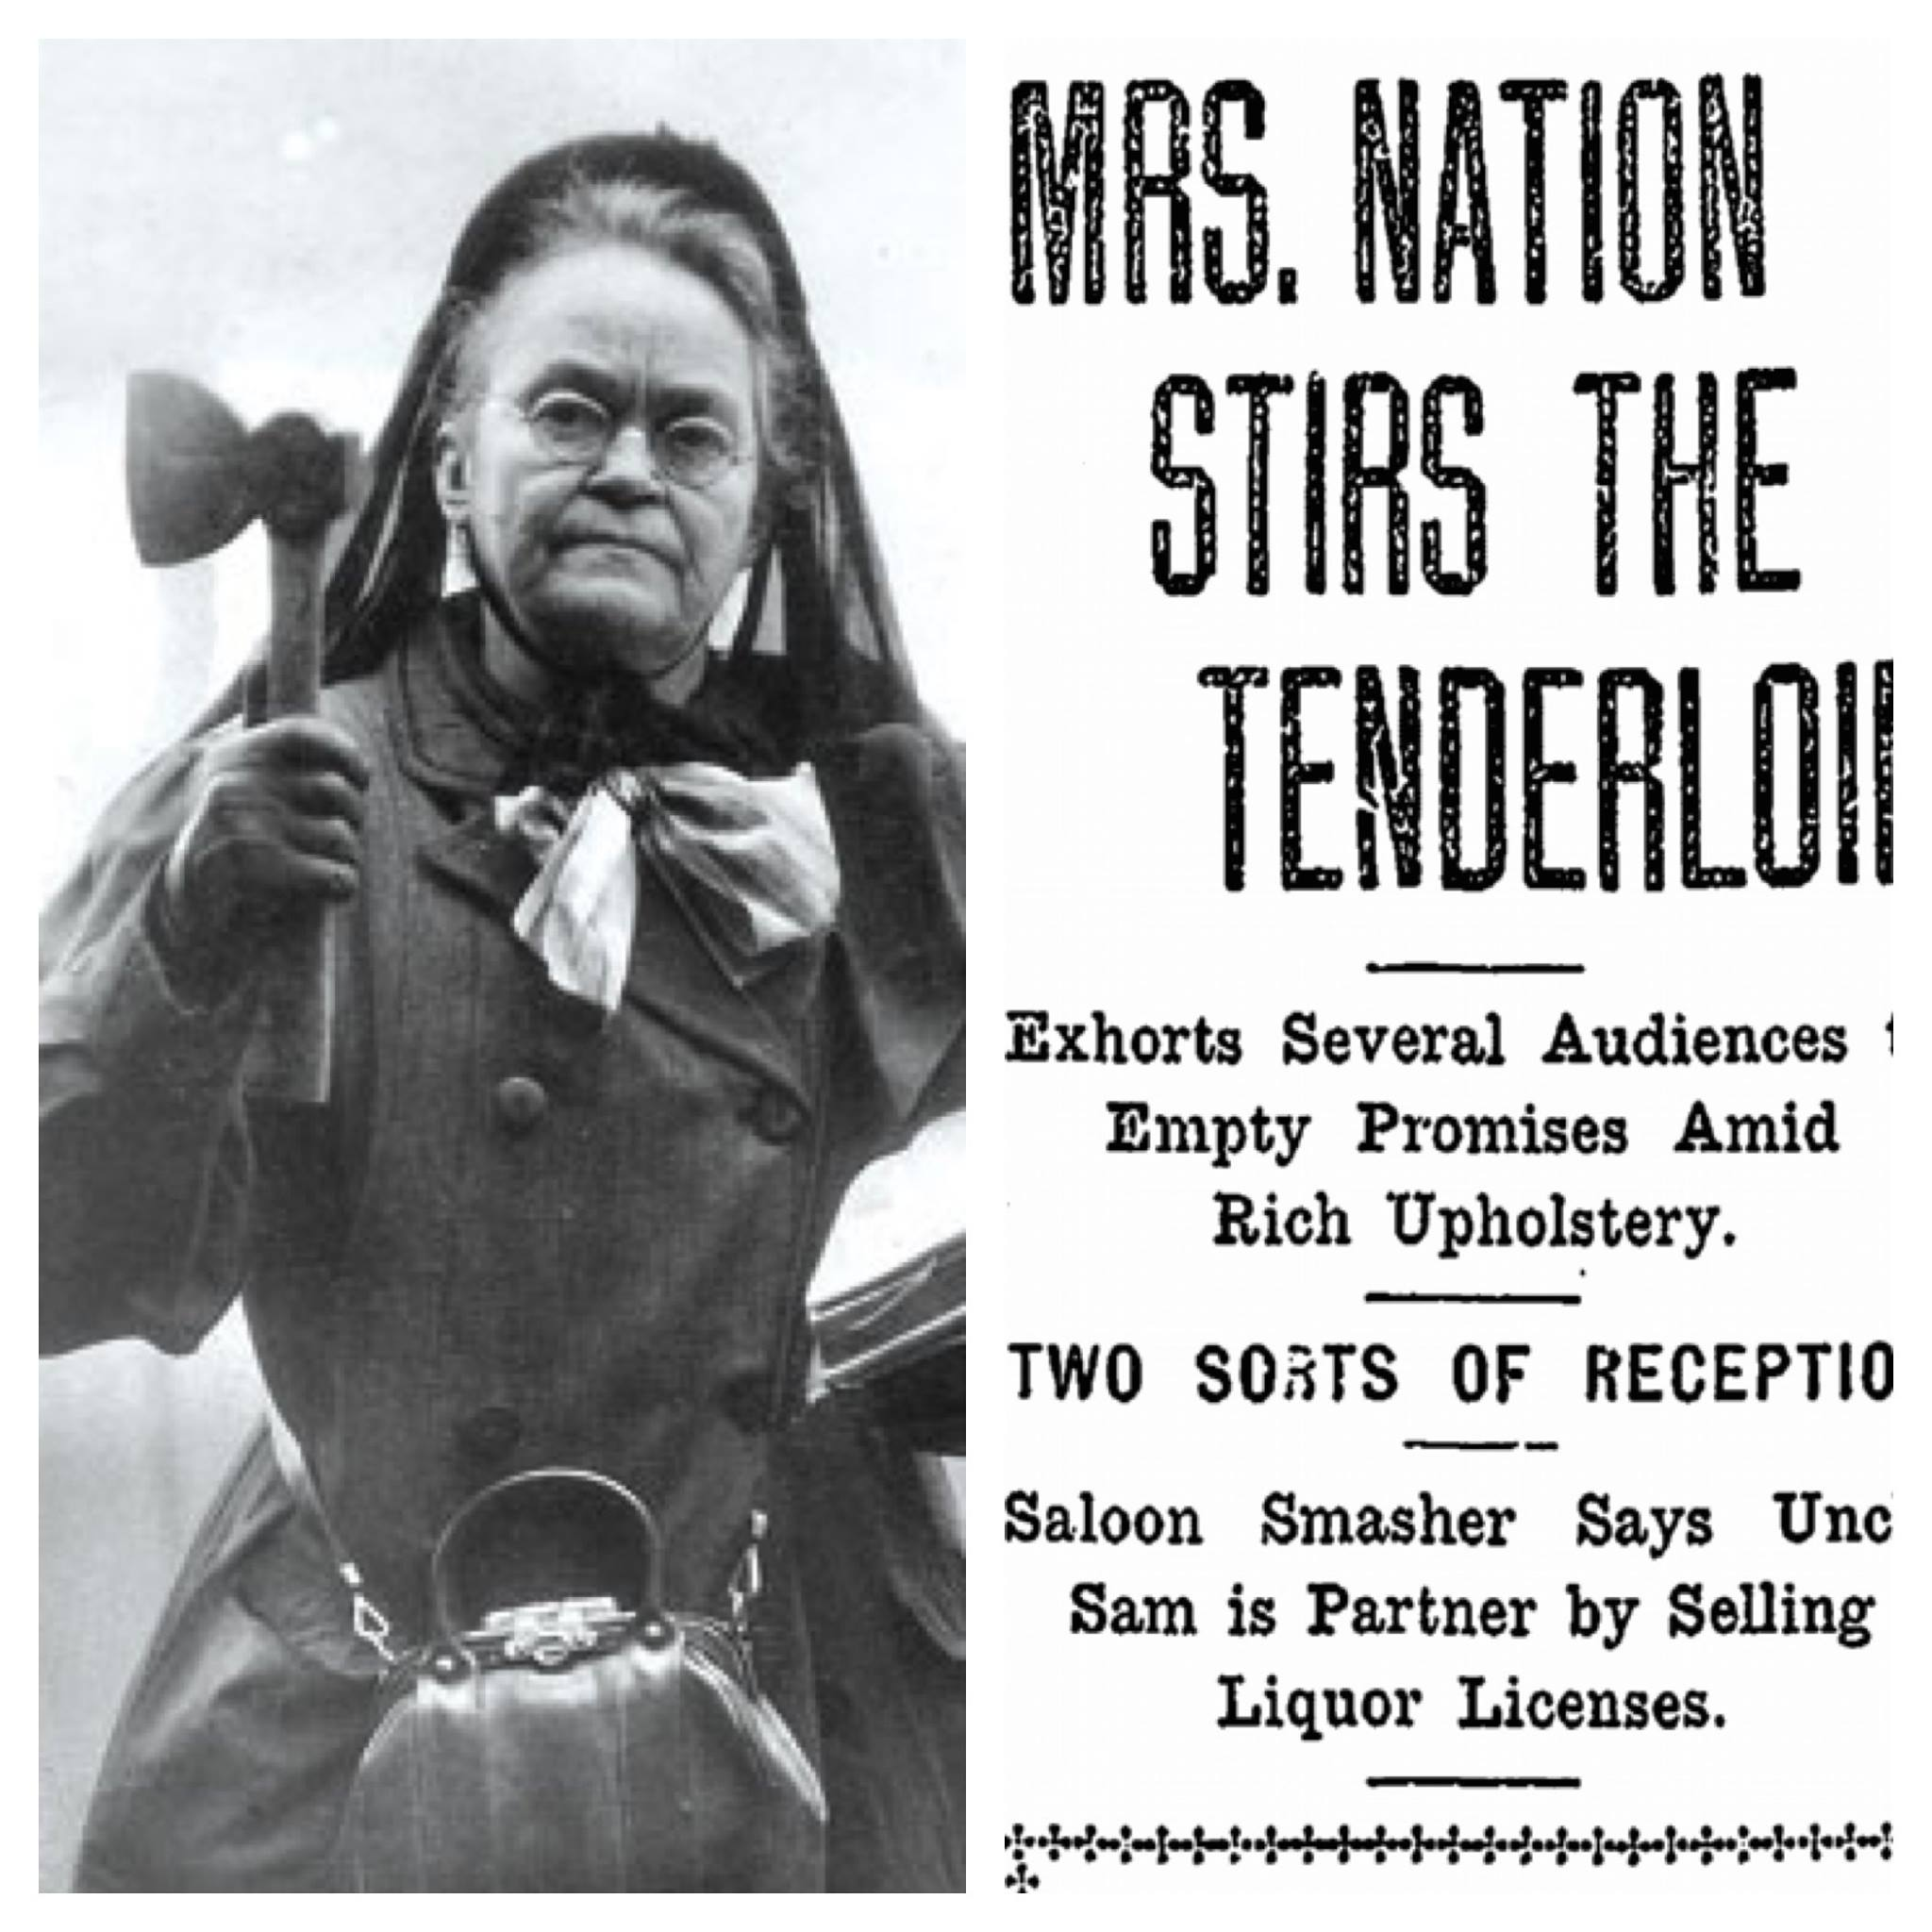 carrie nation essay Discover the rights and responsibilities of belonging to a native nation and the  role  essay: northern plains nations — belonging to place, family, and nation.